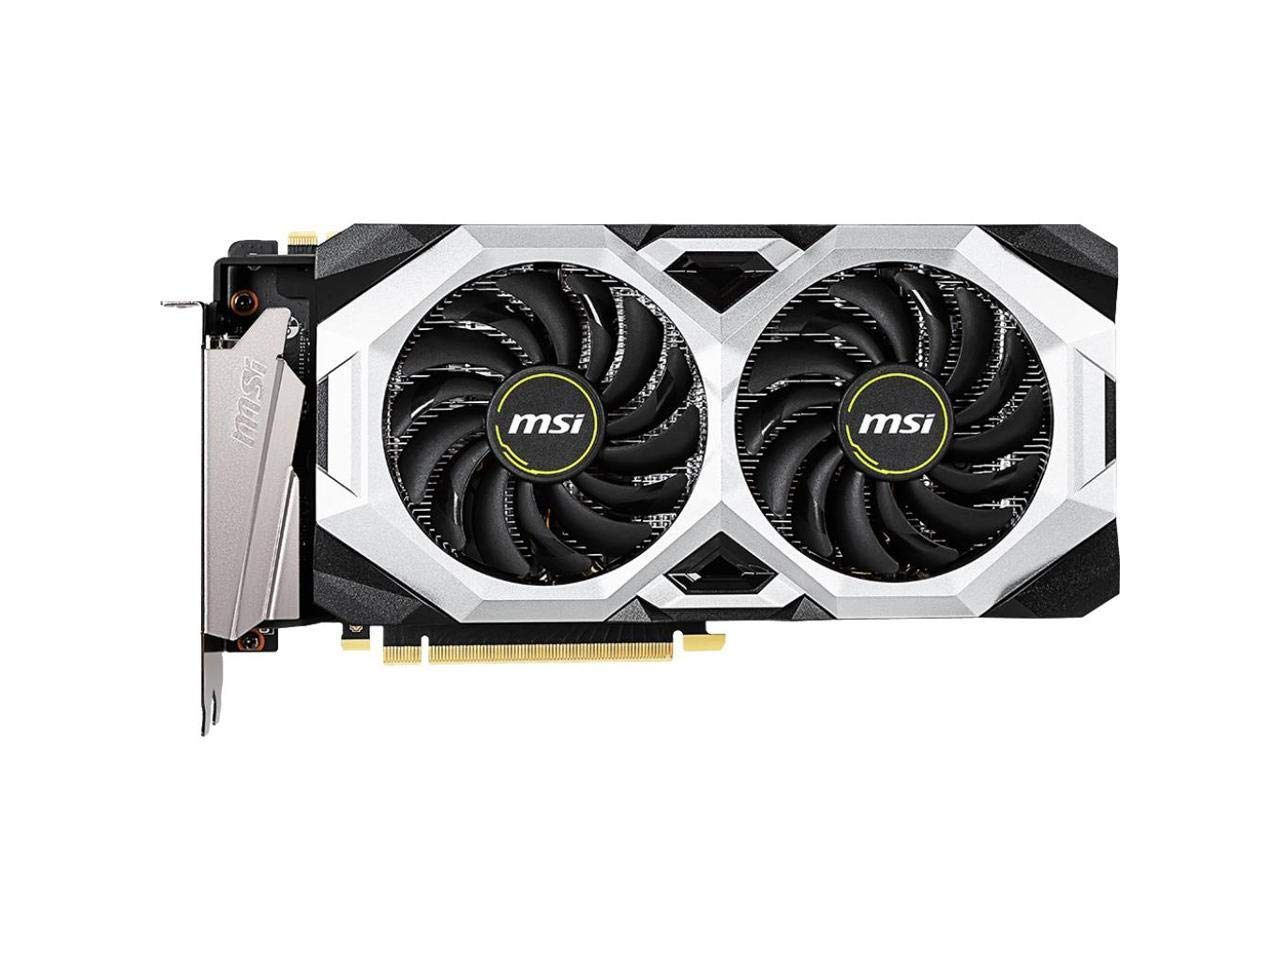 4 Graphics Card - Best $1500 PC Build 2019